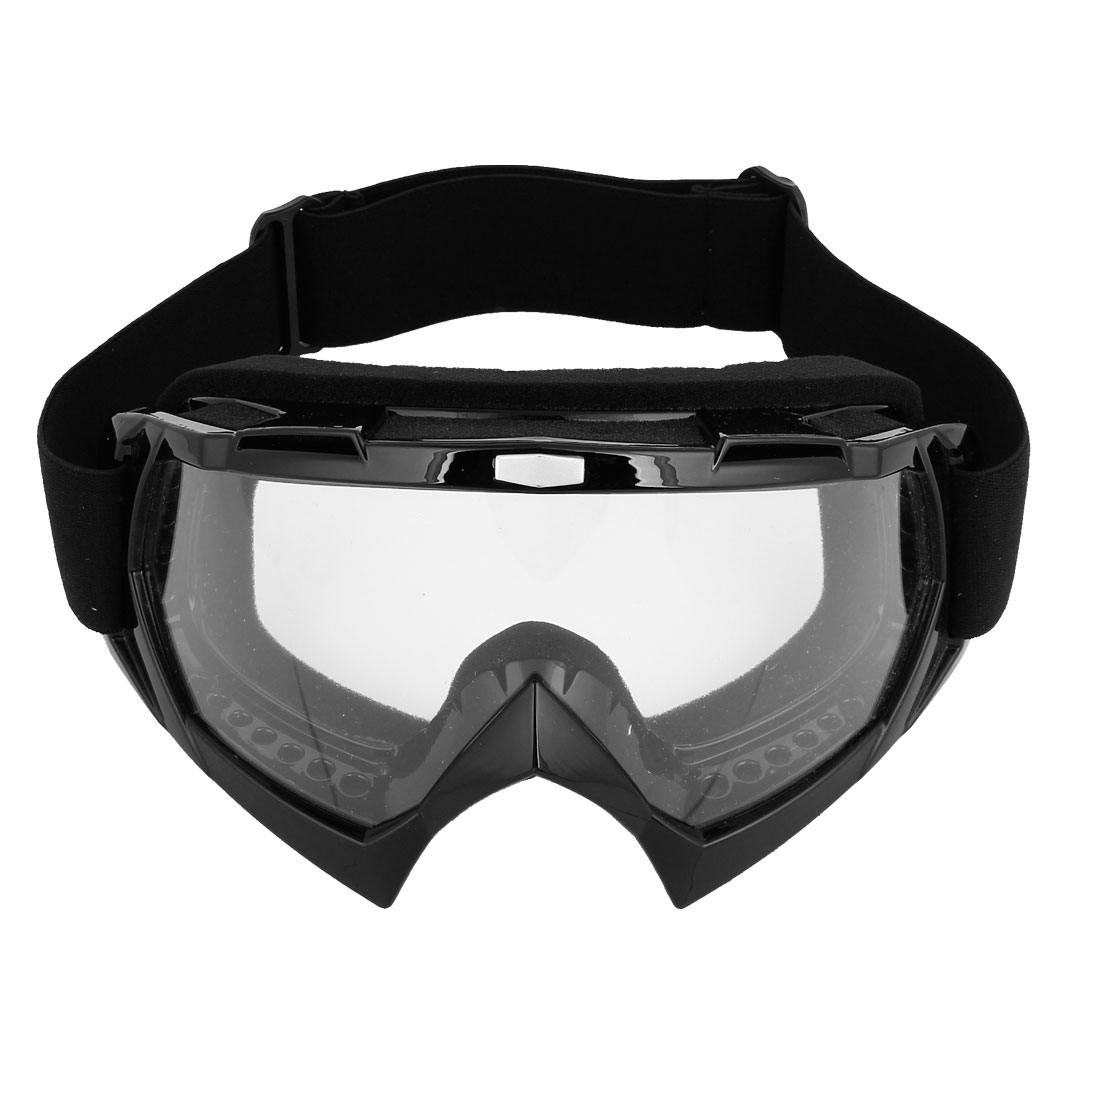 Stretchy Band Clear Lens Ski Motorcycle Goggles Wind Glasses